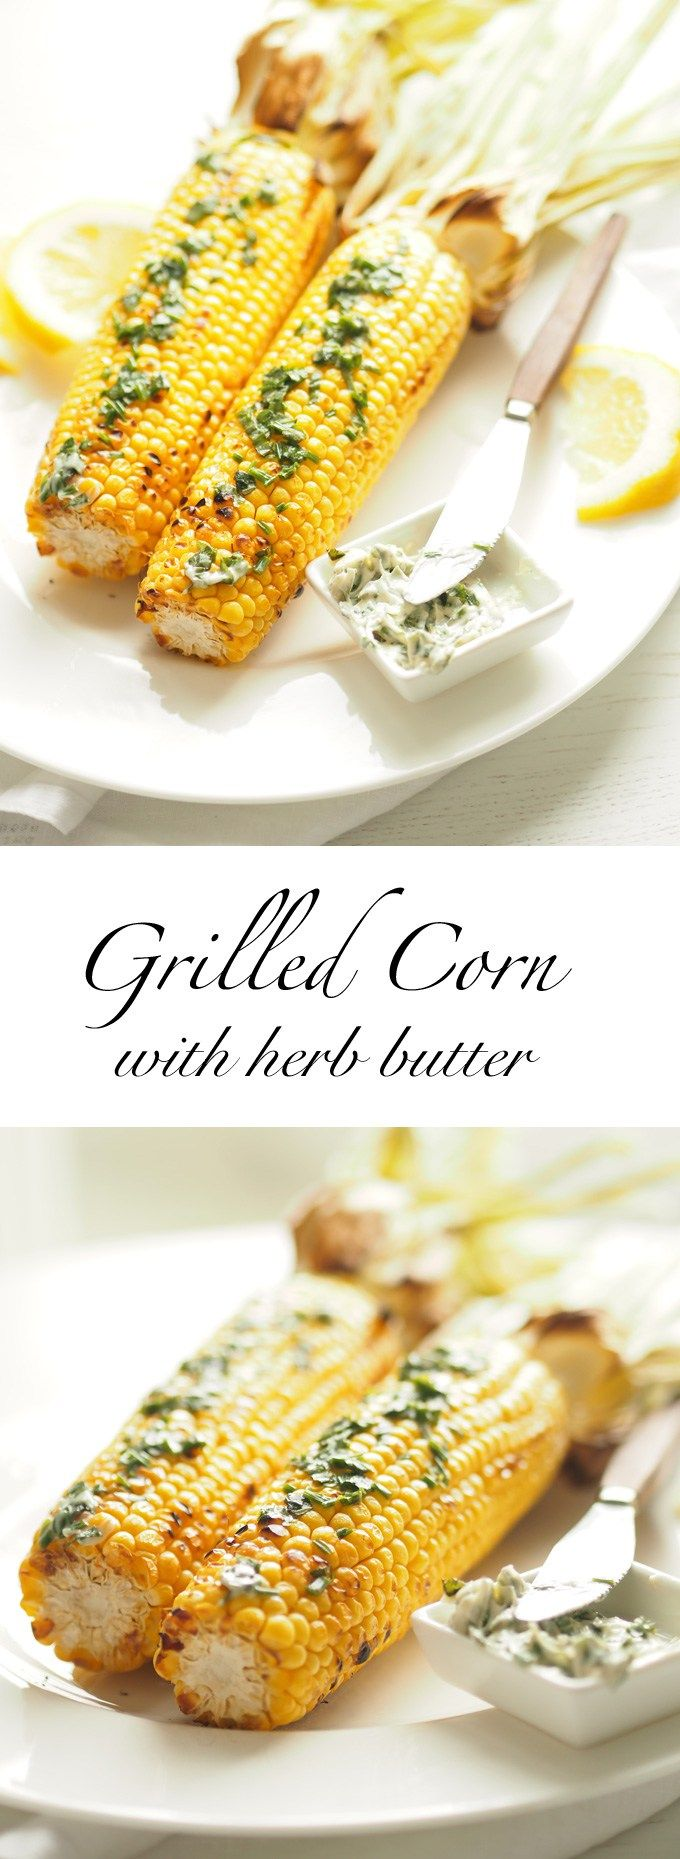 Grilled corn on the cob with homemade herb butter - so simple and so yummy for the whole family to enjoy!